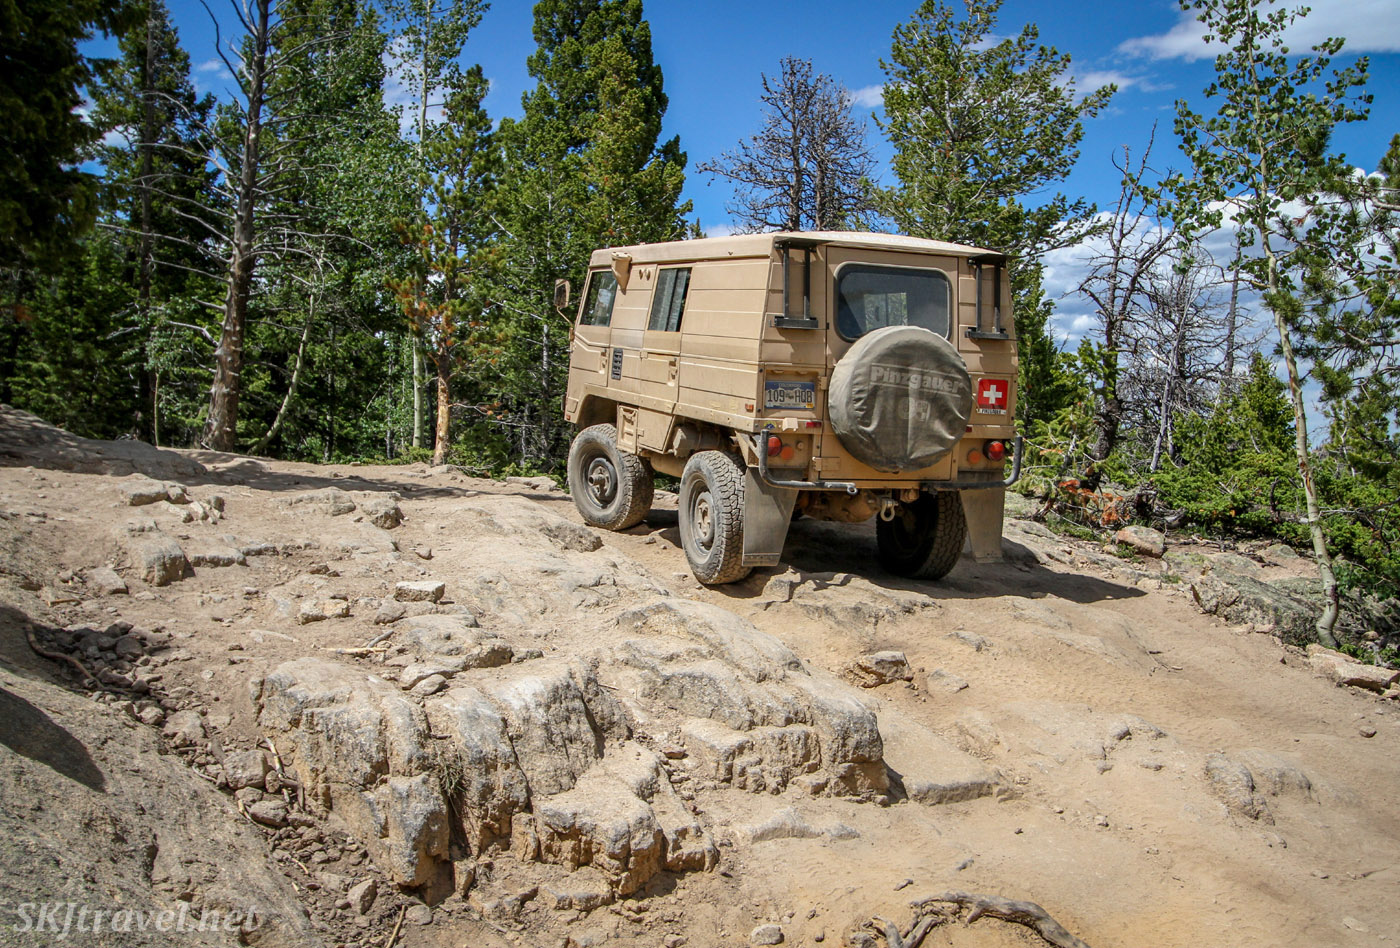 1973 Steyr Puch Pinzgauer on the T-33 plane crash site 4x4 trail. Colorado.